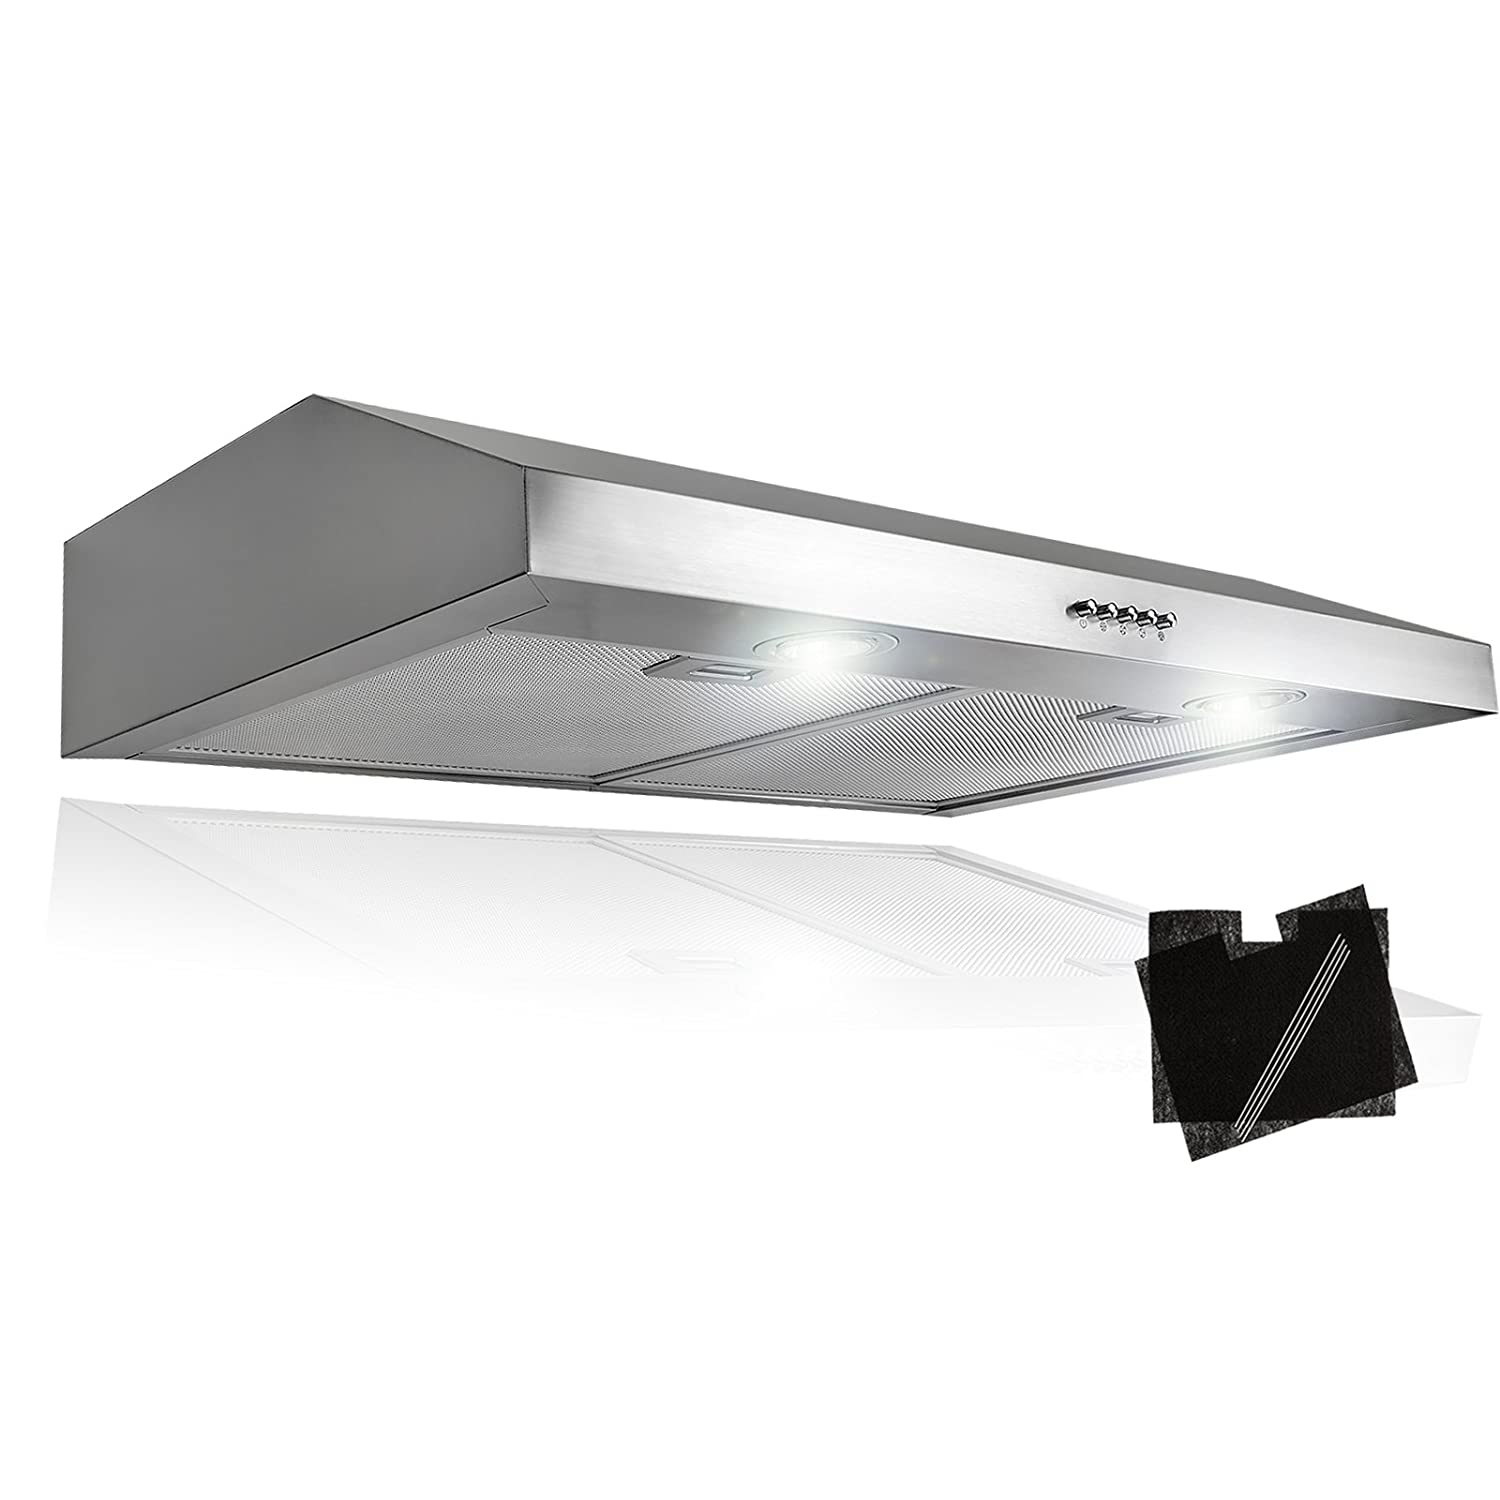 Akdy 30 Stainless Steel Under Cabinet Kitchen Grease Filters Range Hood Ebay